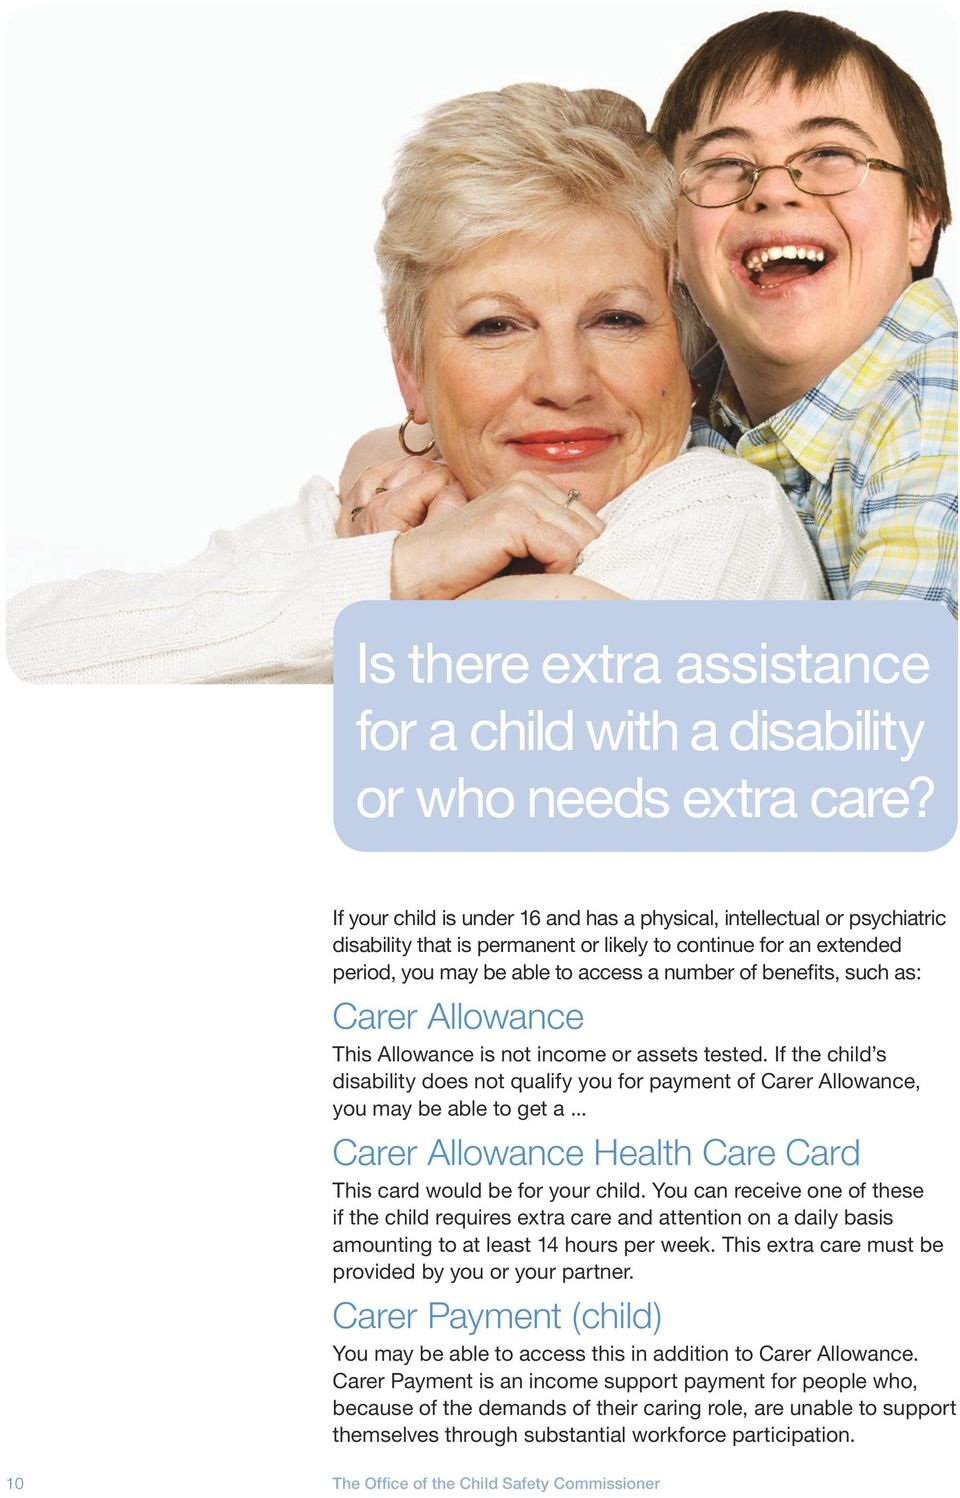 such as: Carer Allowance This Allowance is not income or assets tested. If the child s disability does not qualify you for payment of Carer Allowance, you may be able to get a.